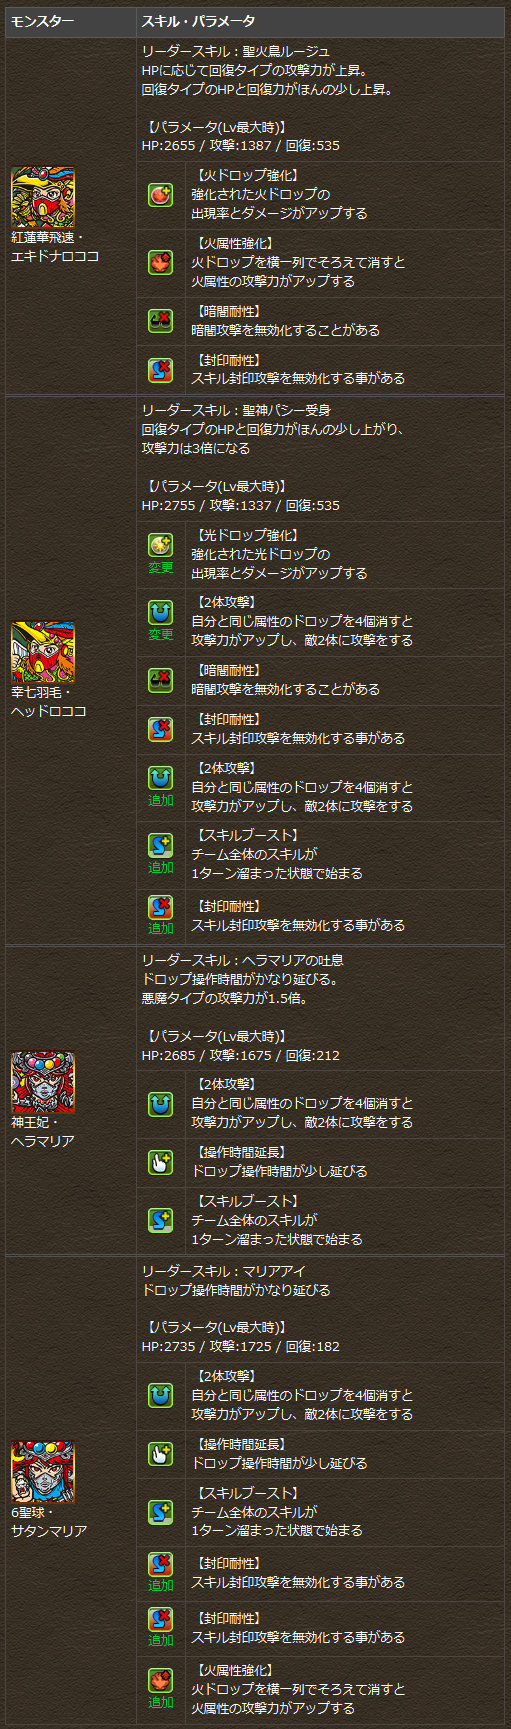 b_20150115154253853.png